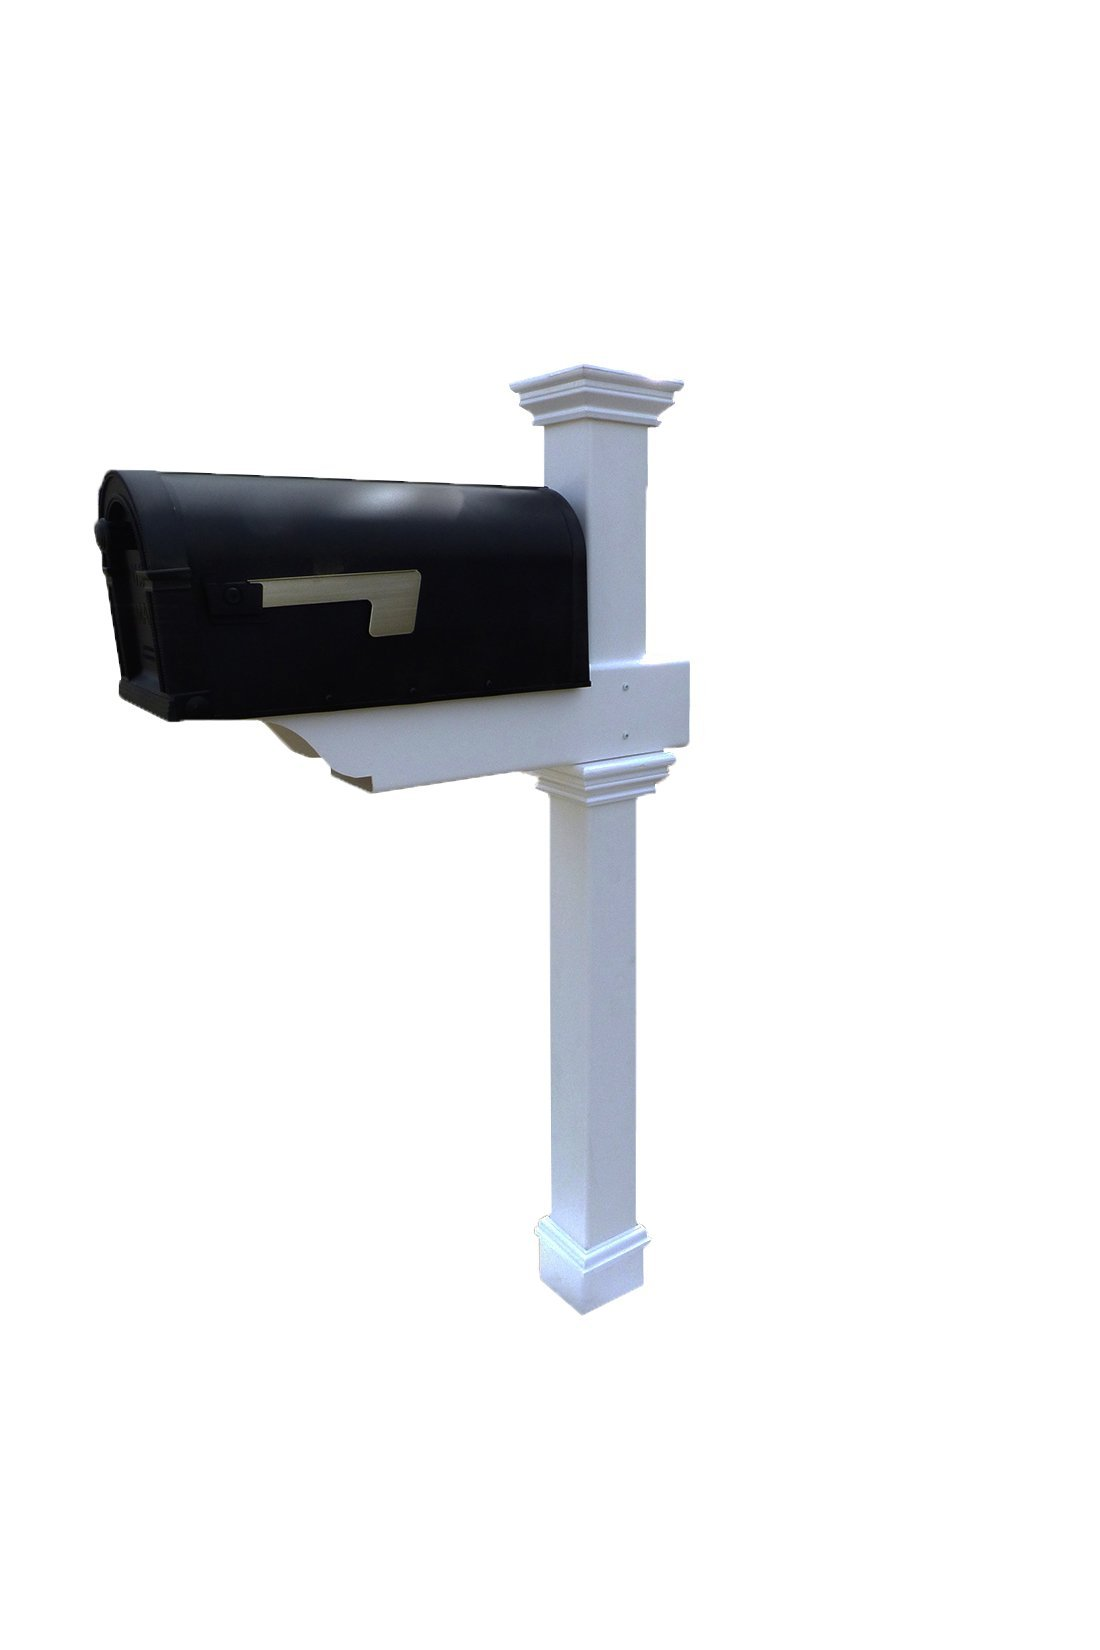 Zippity Outdoor Products Classica Mailbox Post with No-Dig Steel Pipe Anchor Kit, White